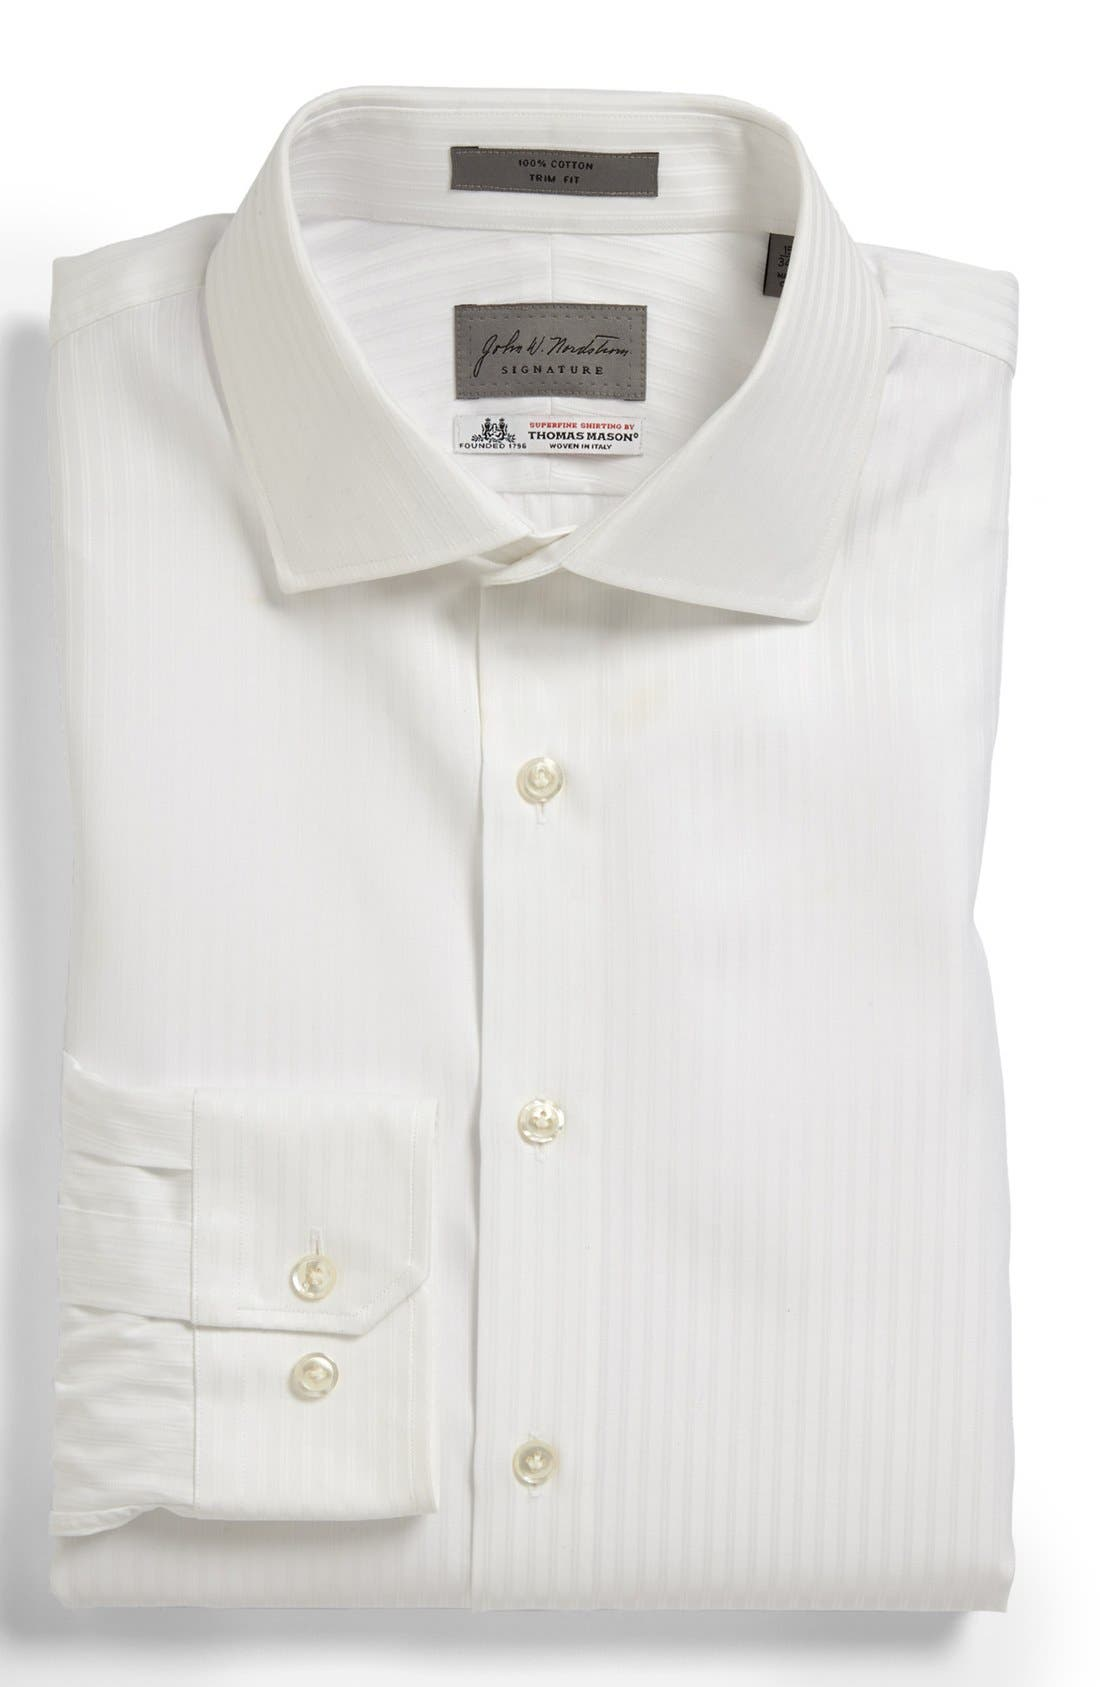 Alternate Image 1 Selected - John W. Nordstrom® Signature Trim Fit Stripe Dress Shirt